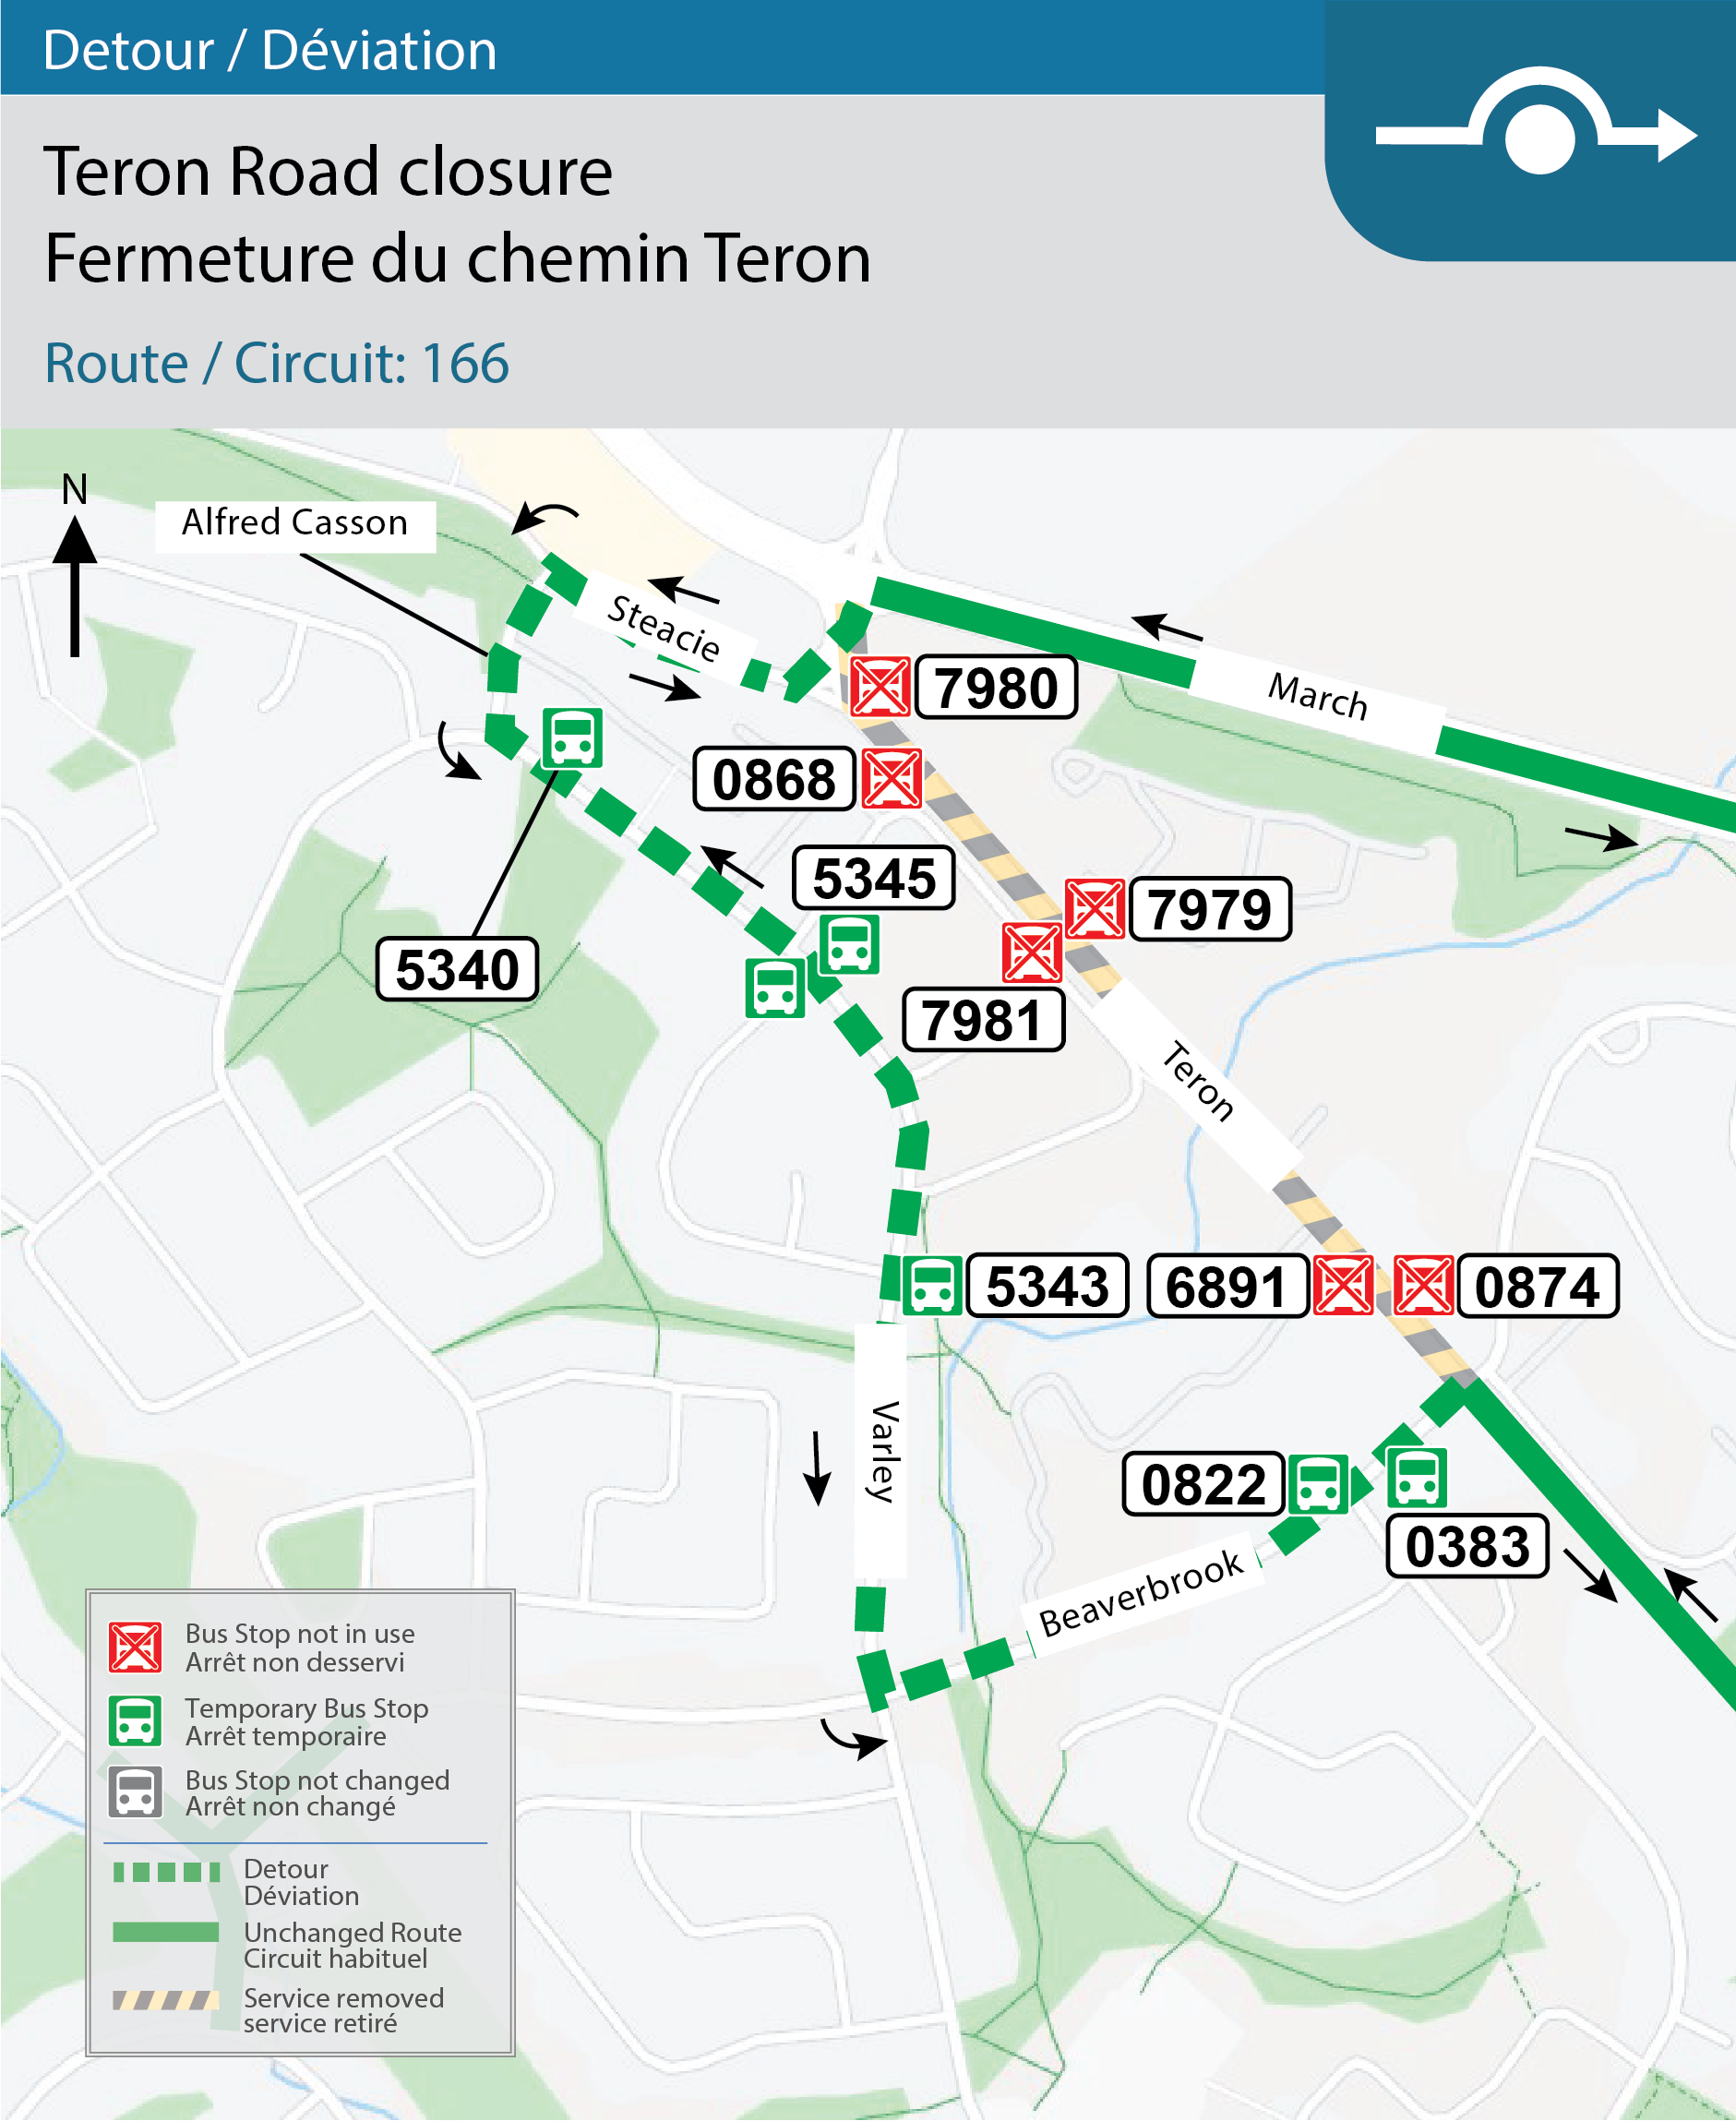 Map for Route 166, Detour for Teron Road closure